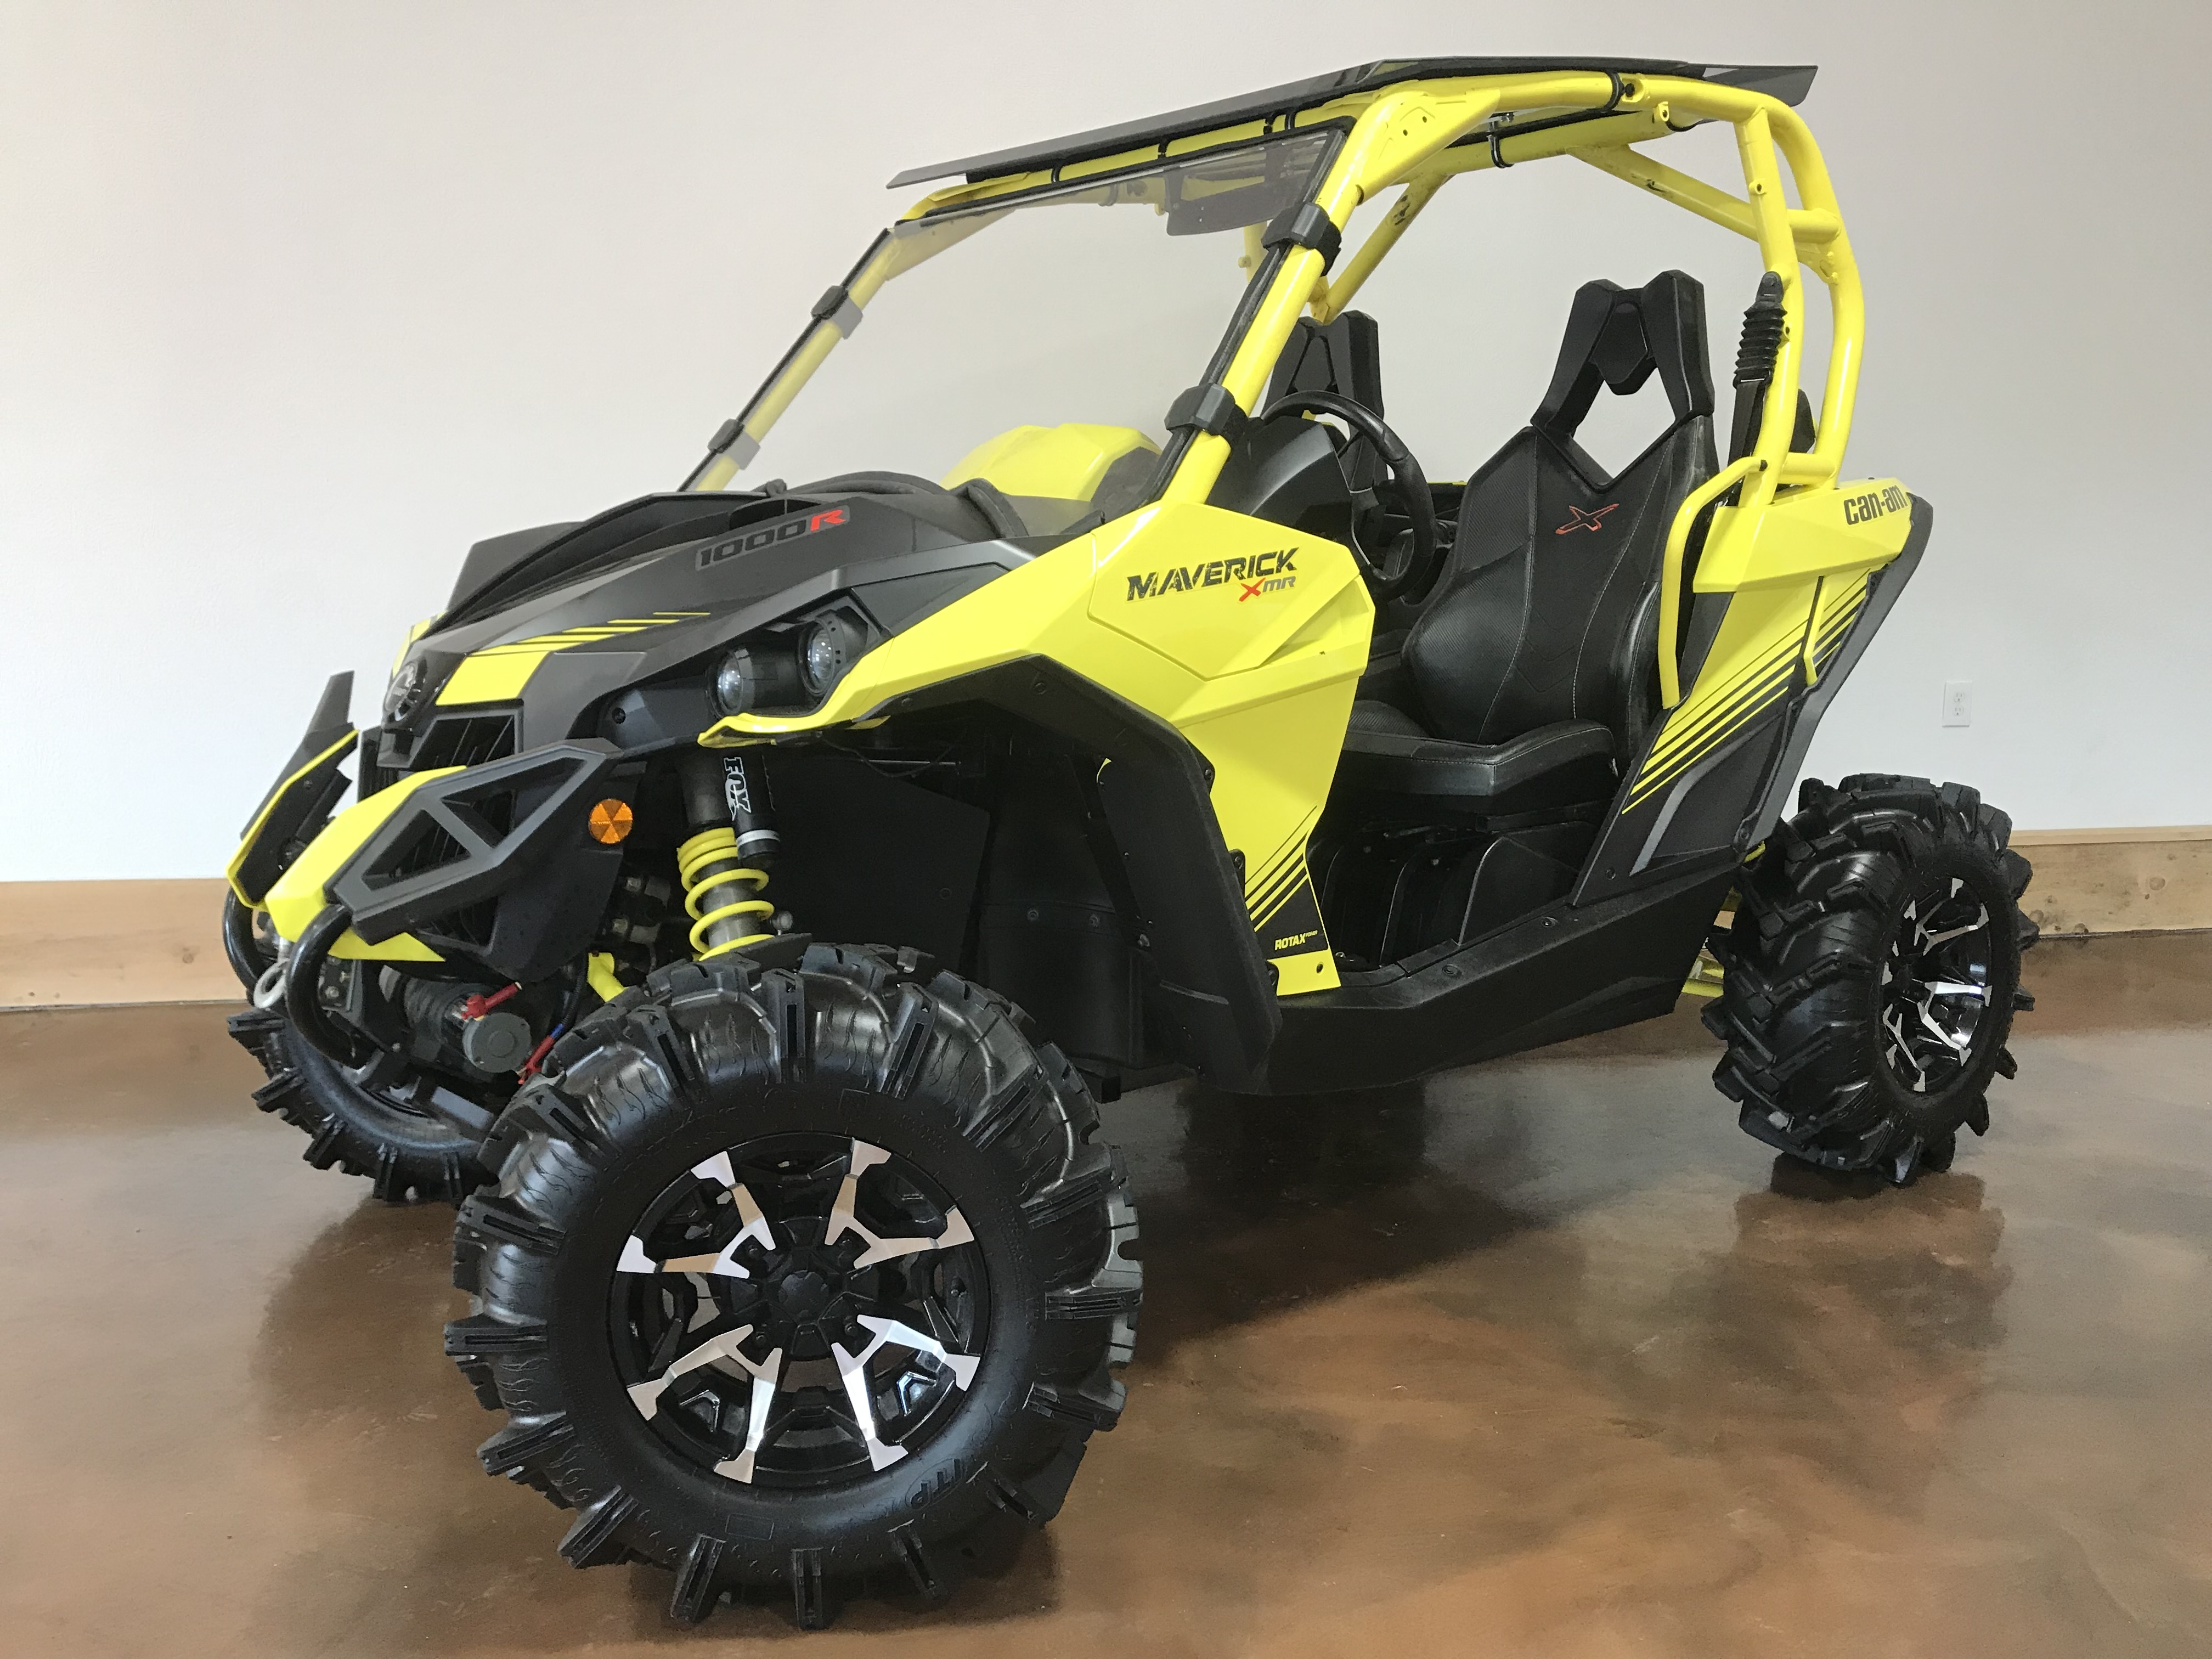 2018 Can-Am Maverick 1000R X MR - ONLY 470 Miles! 79819